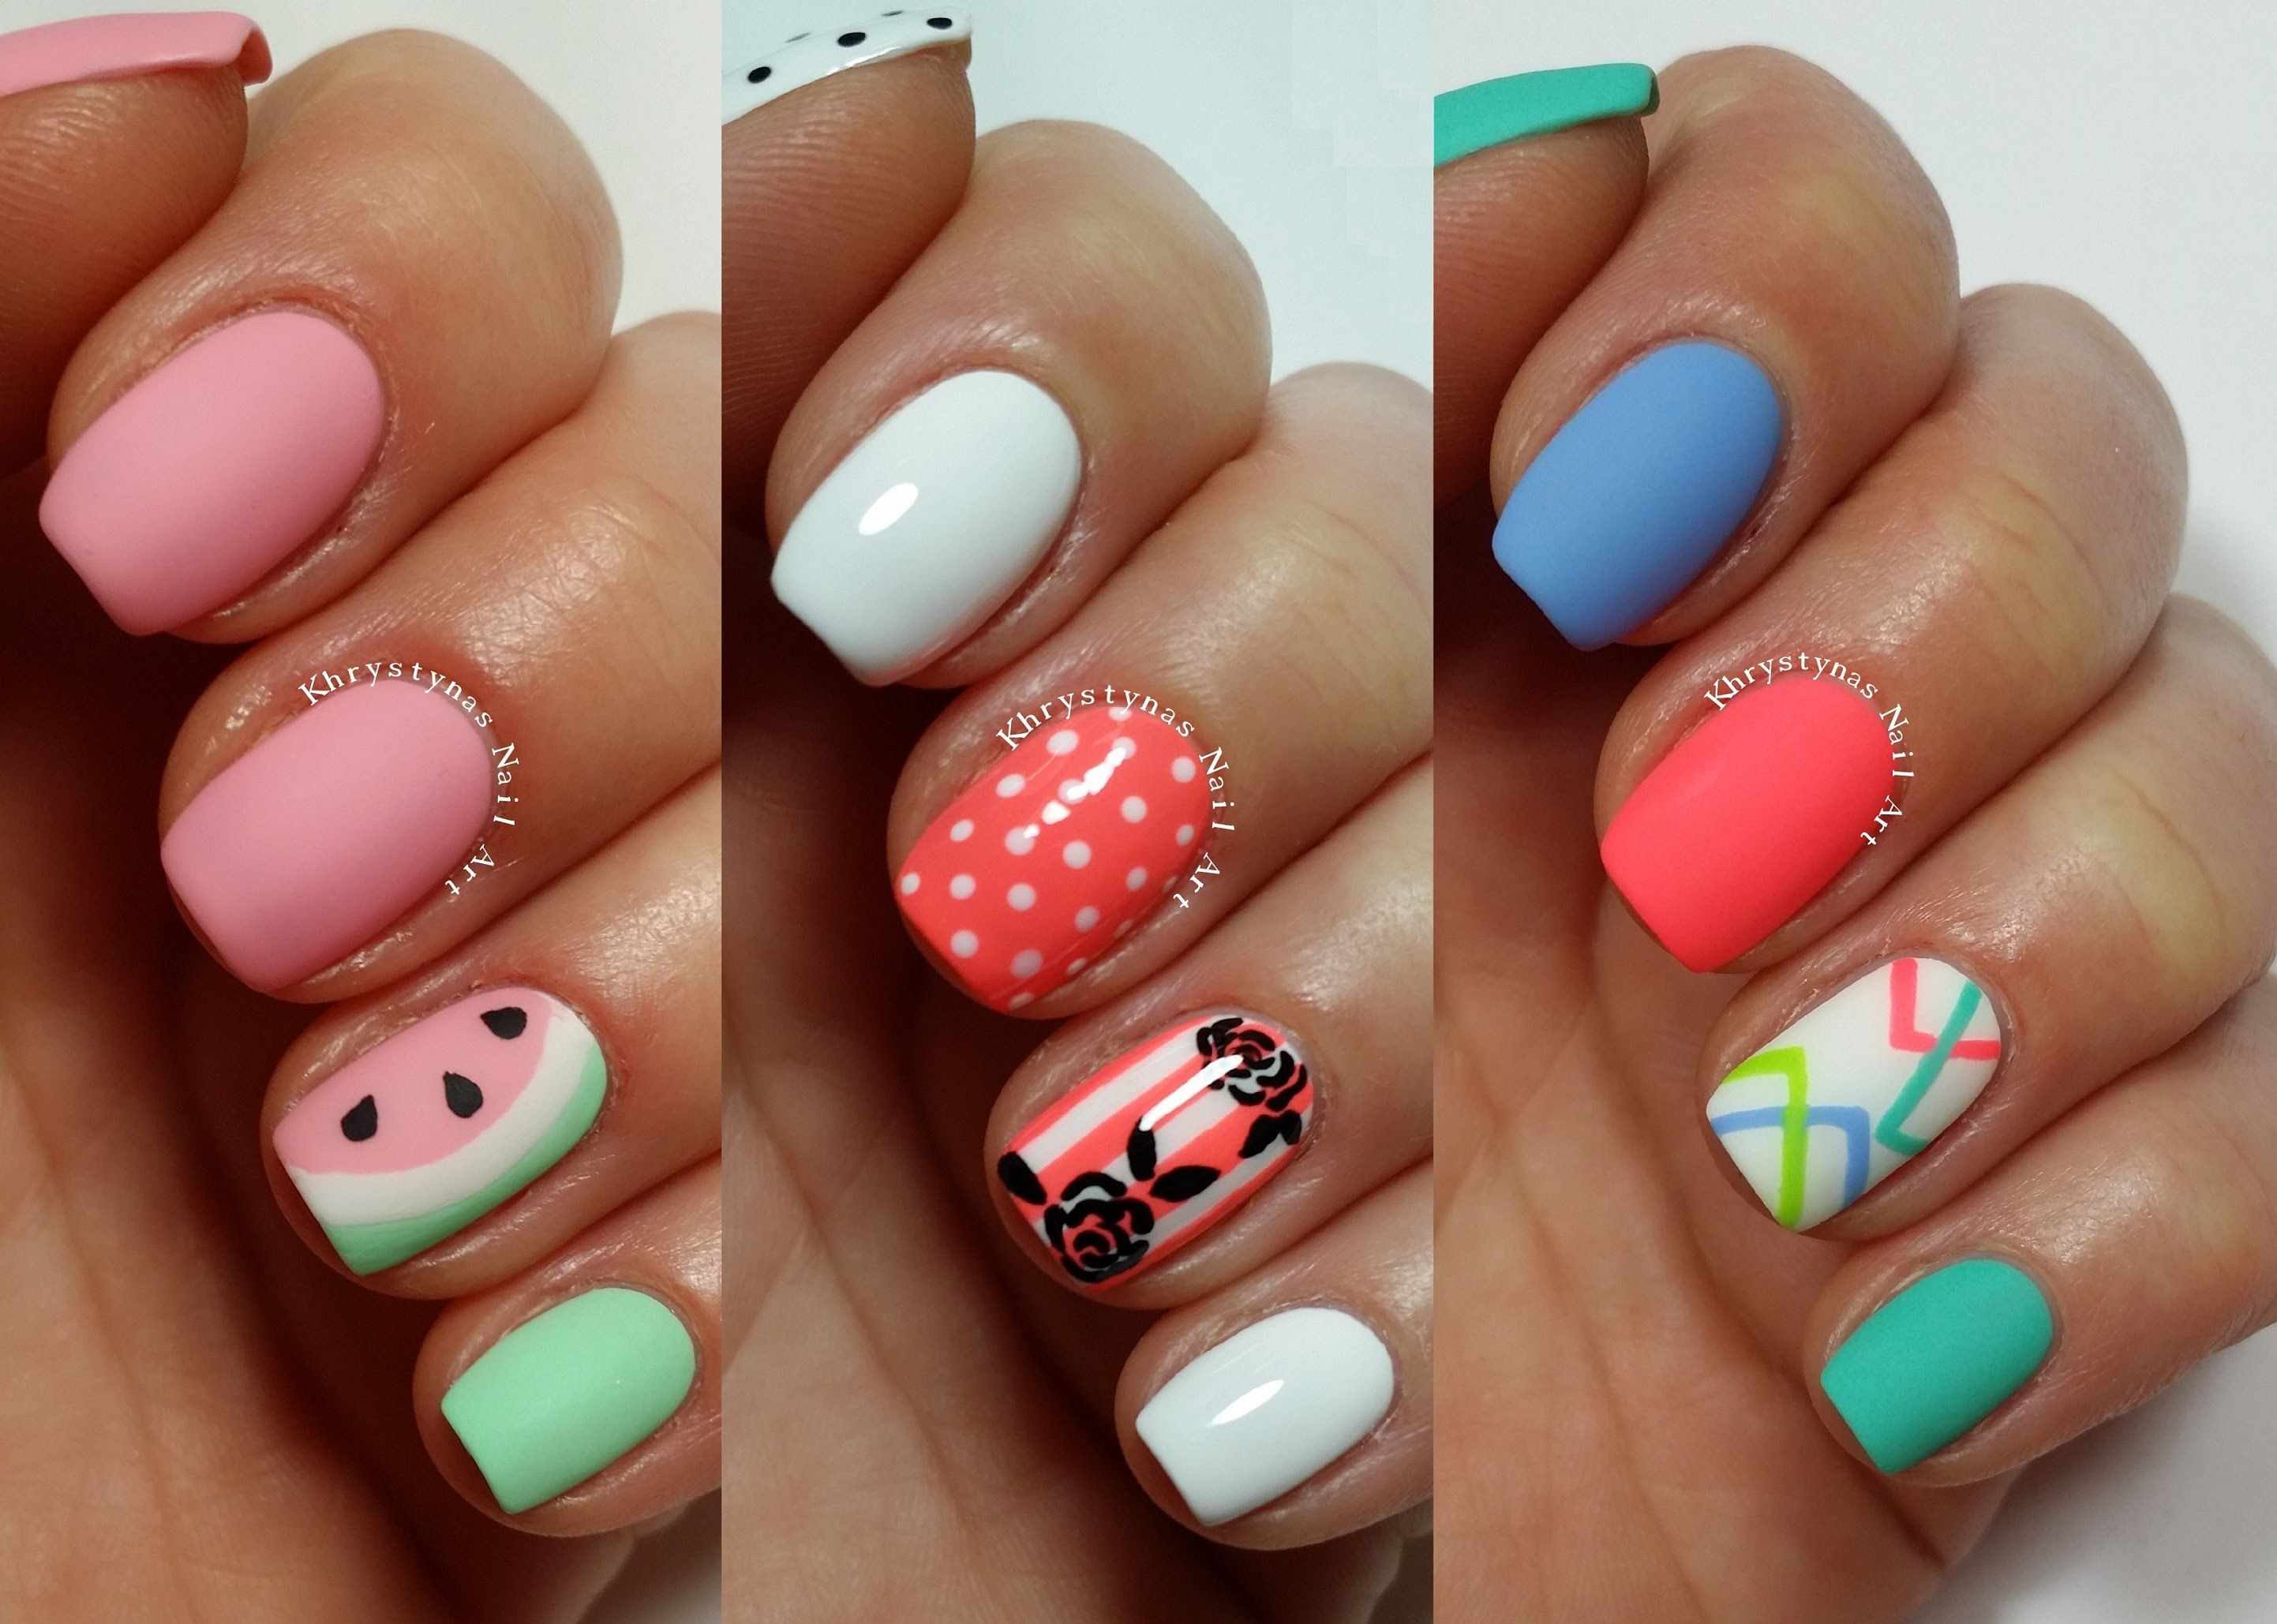 3 Easy Nail Art Designs for Short Nails | Freehand #2 | Beauty ...